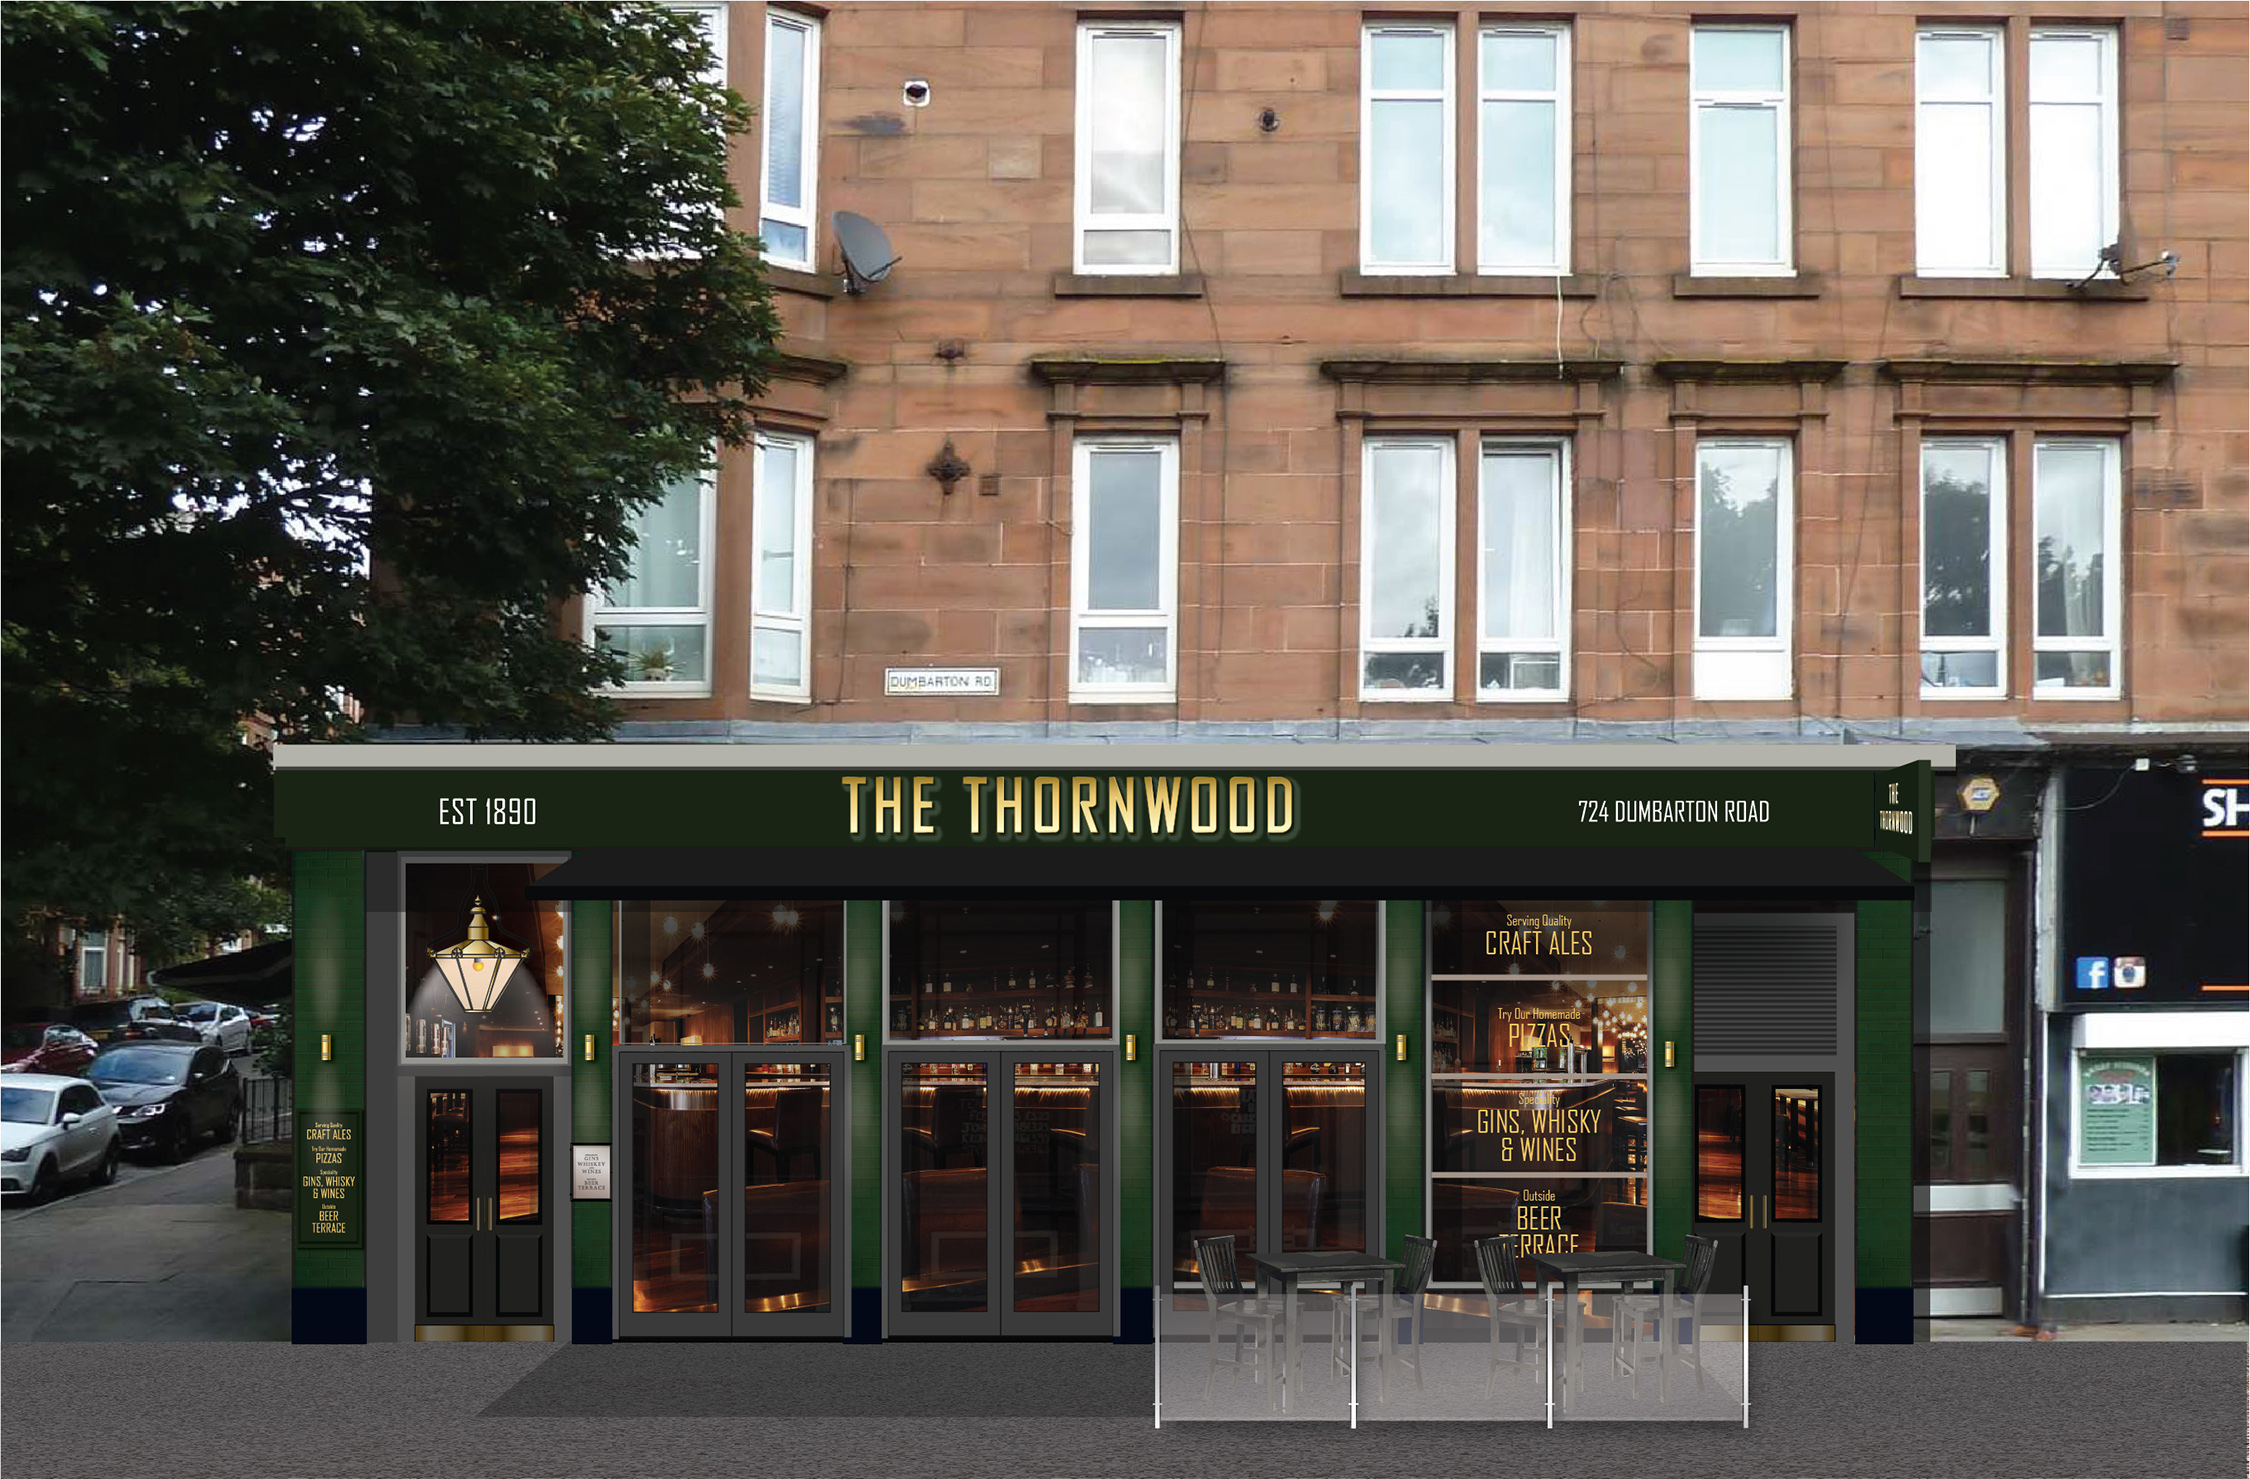 Glasgow bar with a violent past sets sights on family-friendly future